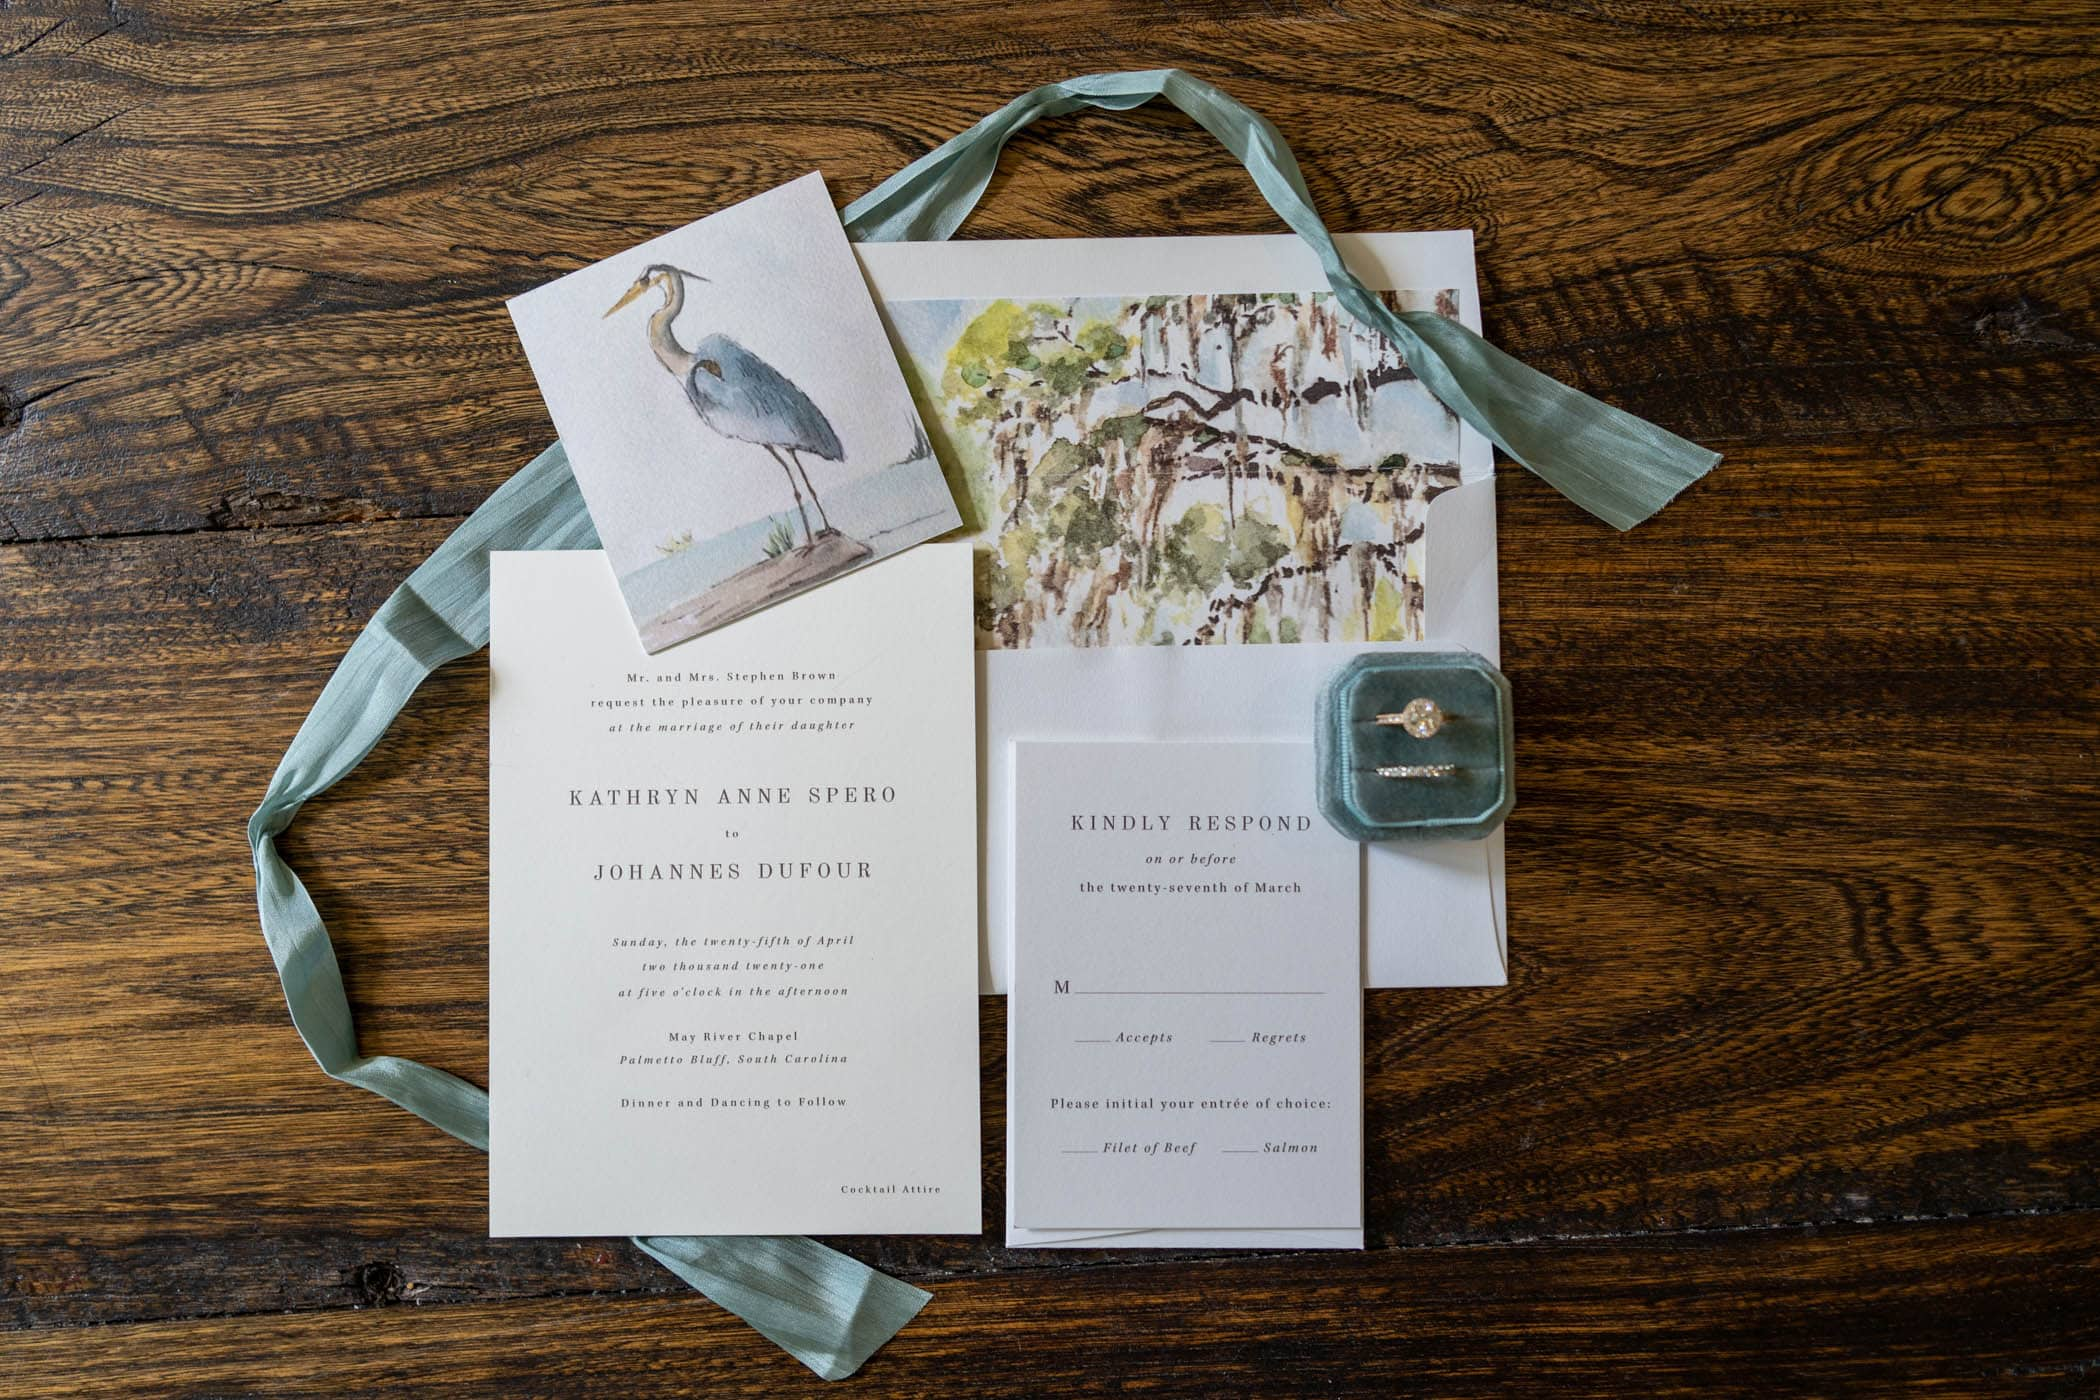 Lowcounty Wedding stationary suite for palmetto bluff may river chapel wedding by wedding photographer Susan DeLoach Photography